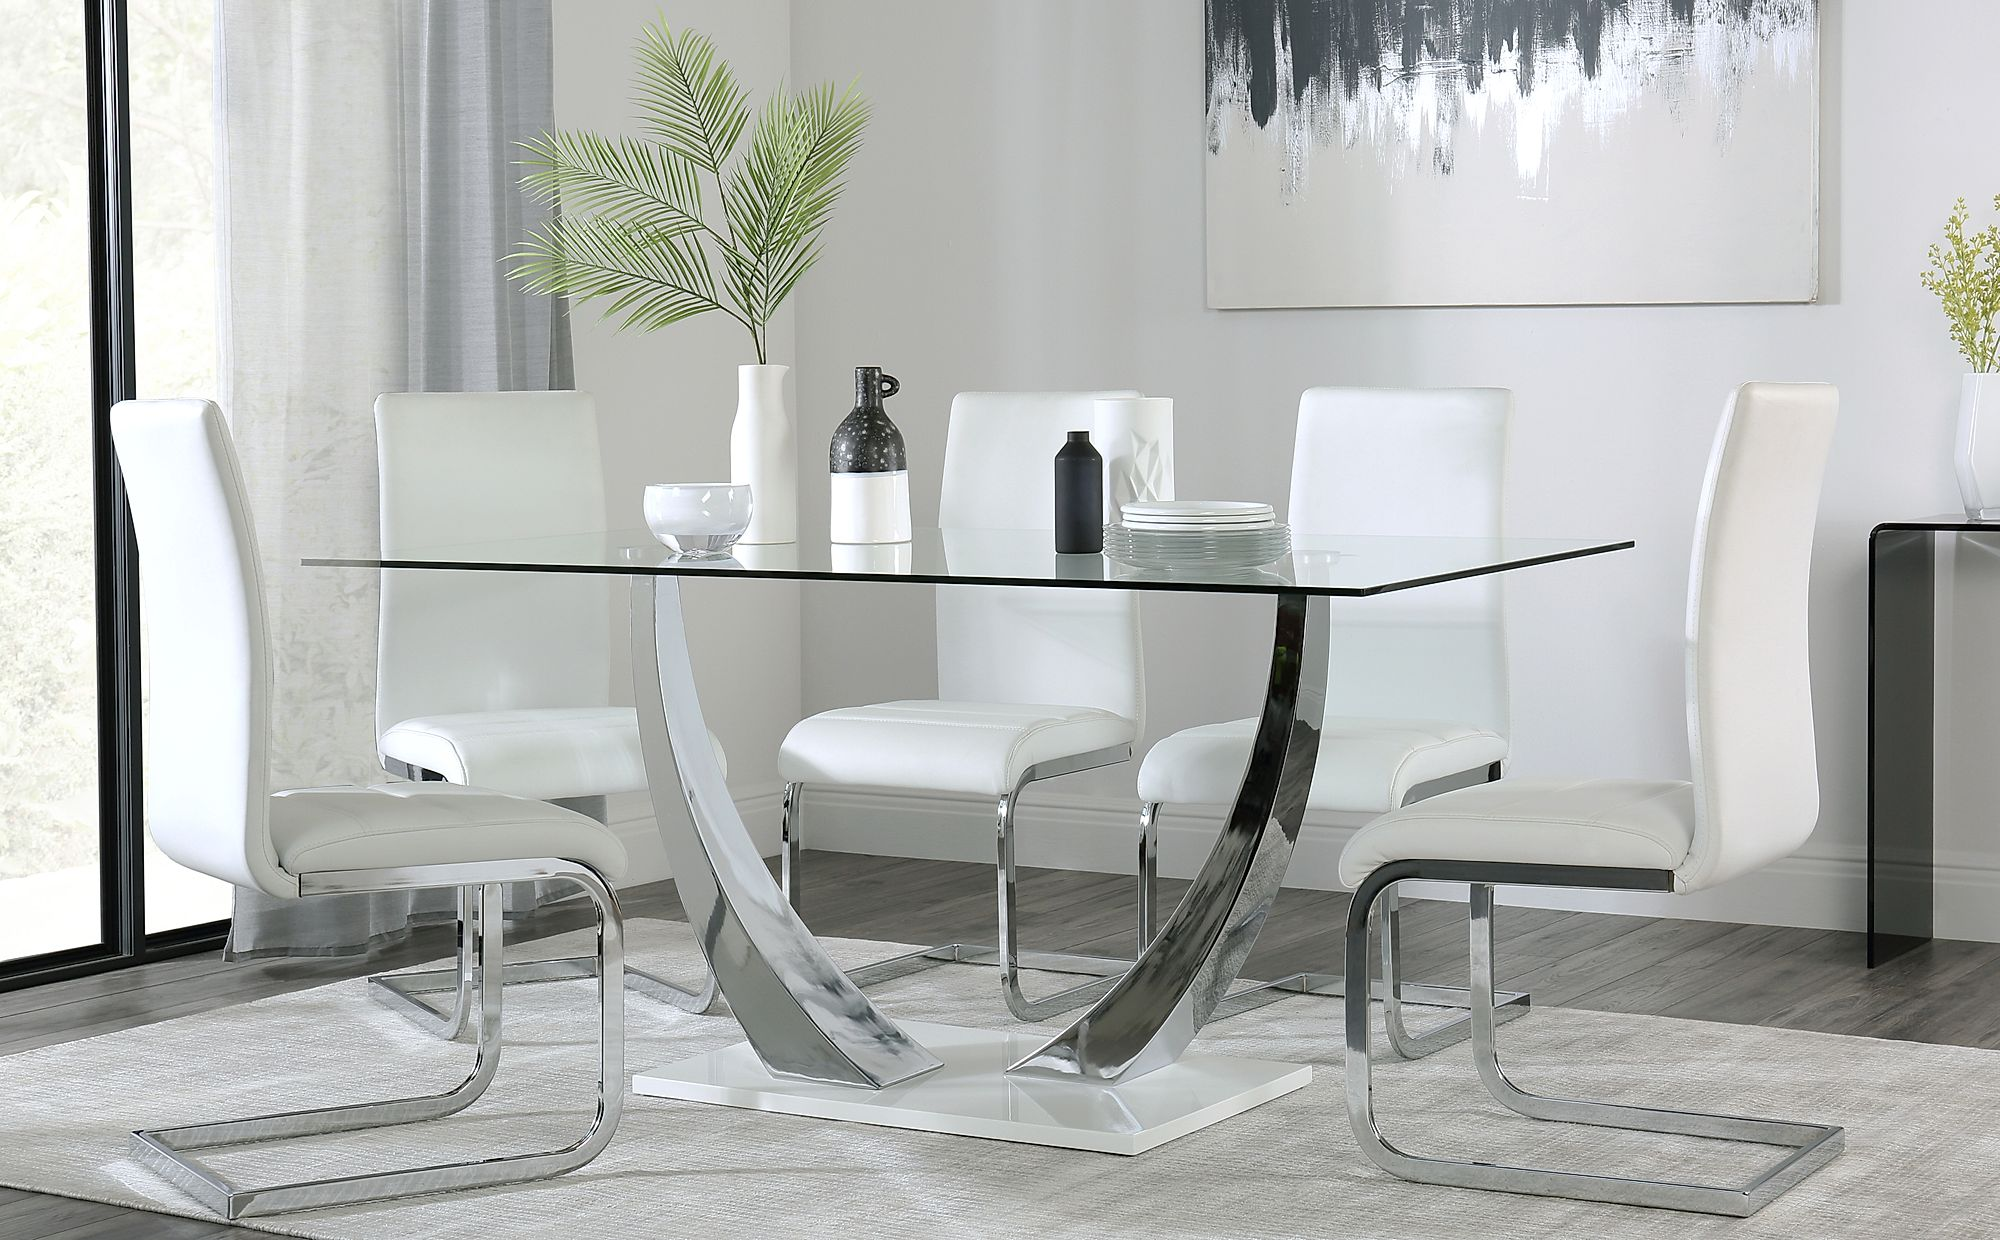 Details about Peake & Perth White High Gloss and Glass Dining Table & 4 6  Chairs Set - White